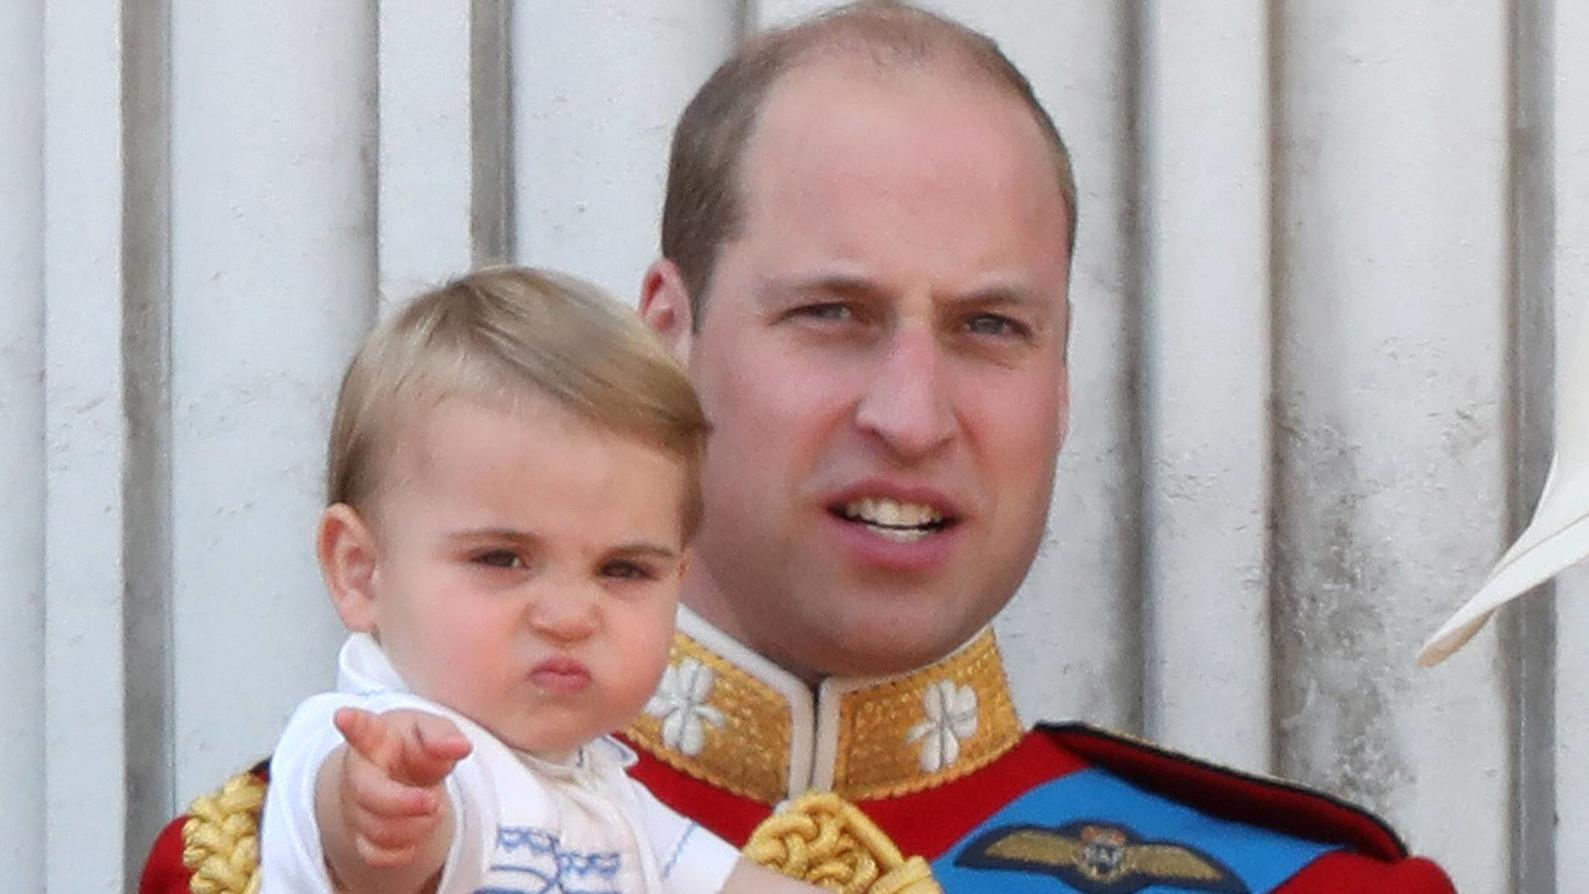 Prince William (Duke of Cambridge), holding Prince Louis, pictured at the Trooping of the Colour 2019. Trooping the Colour marks the Queens official birthday and 1,400 soldiers, 200 horse and 400 musicians parade for Queen Elizabeth II, and the event